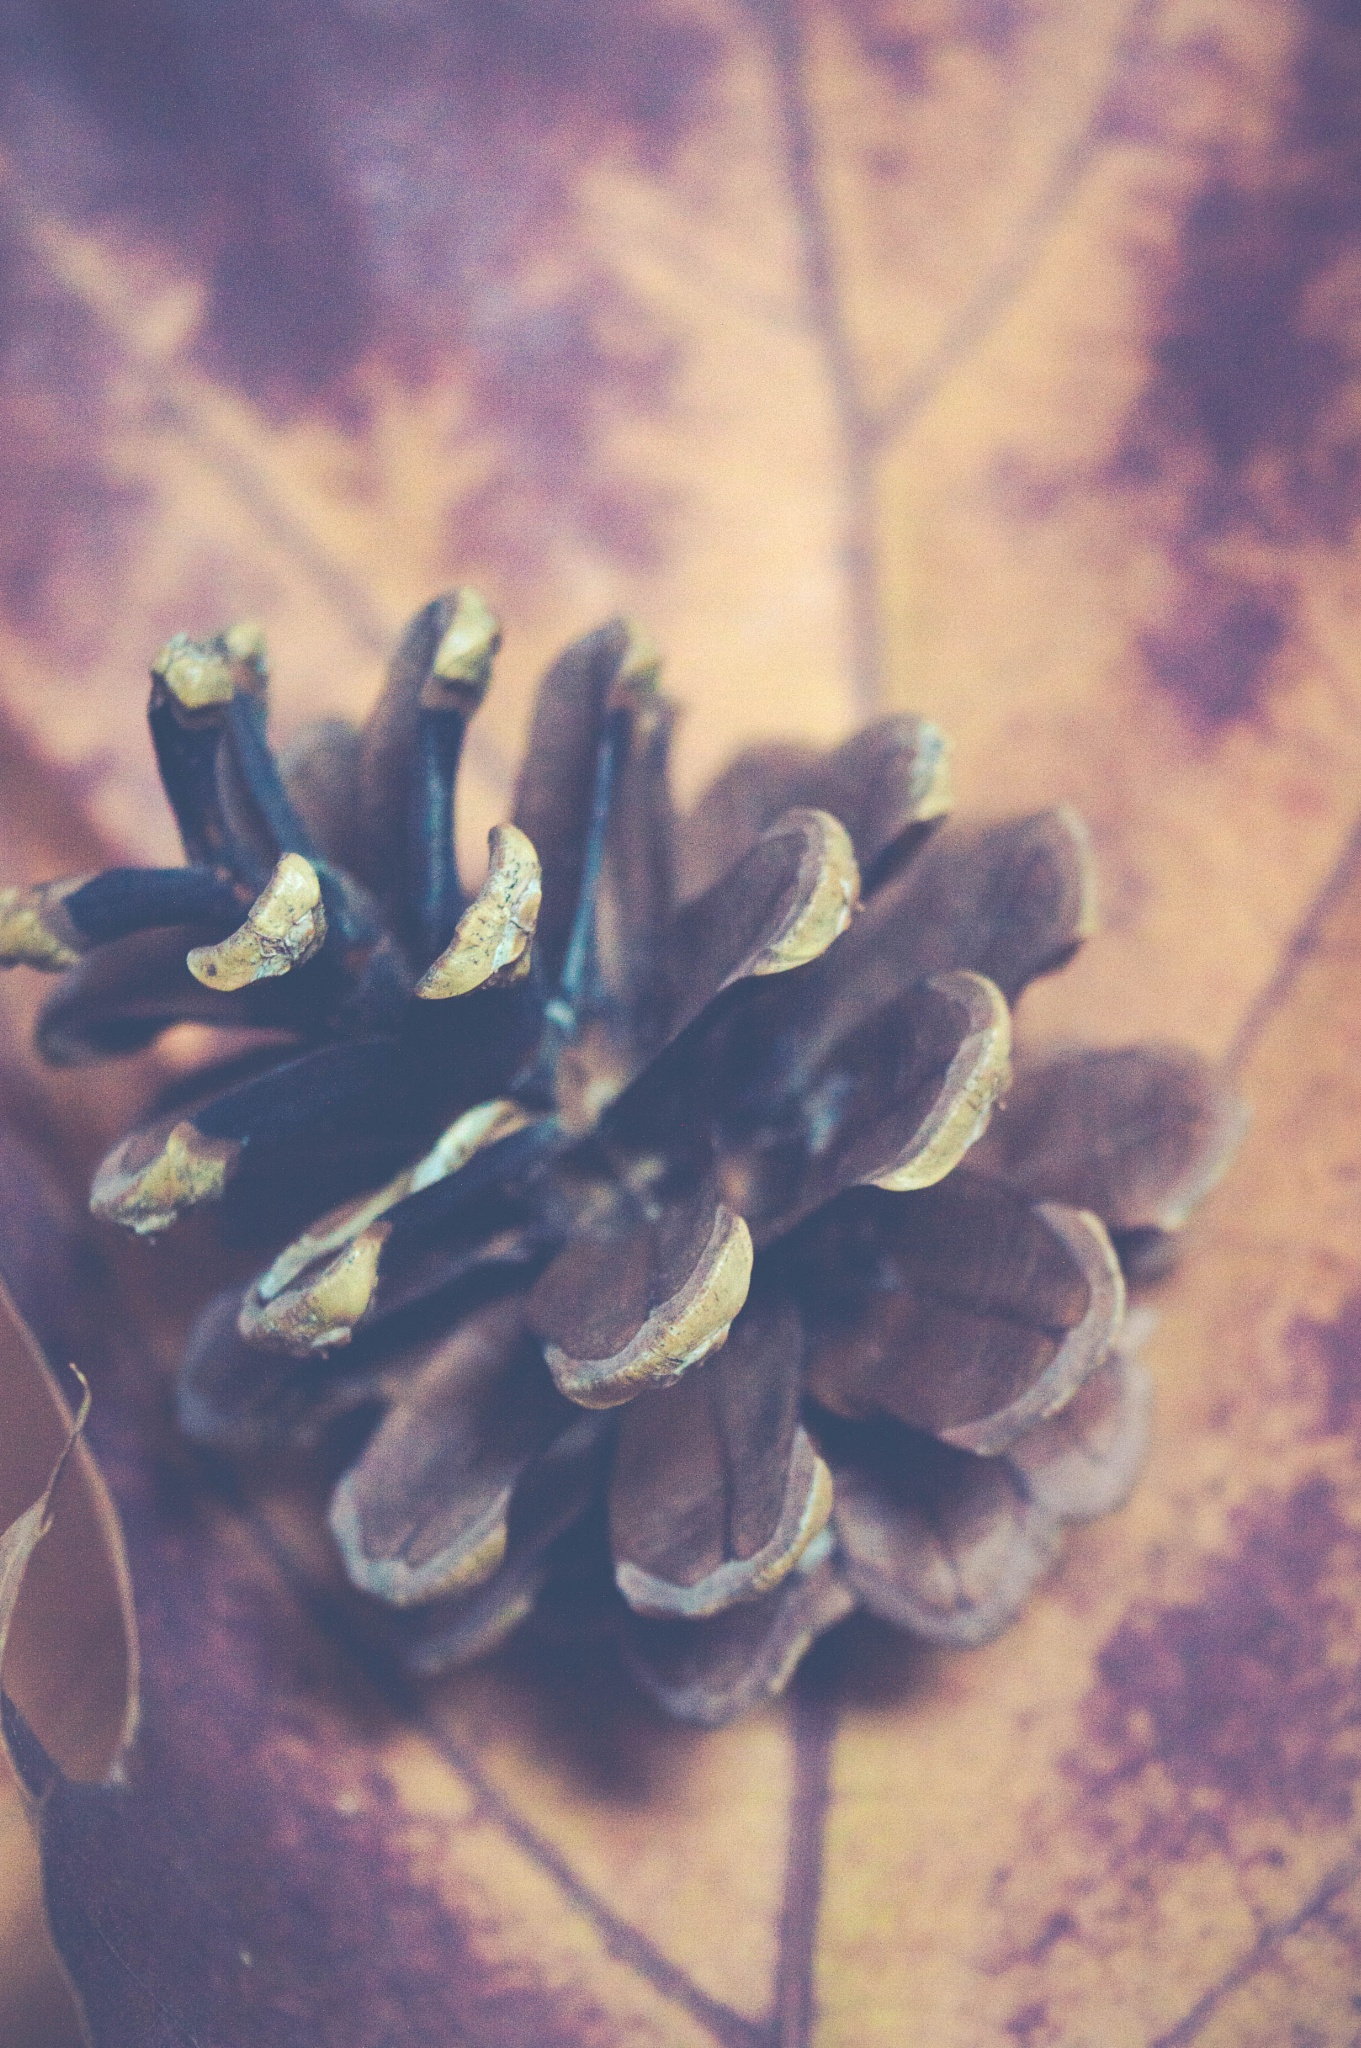 Autumn season - Pine cone on a dry red maple leaf, vintage style by Hristina Hristova